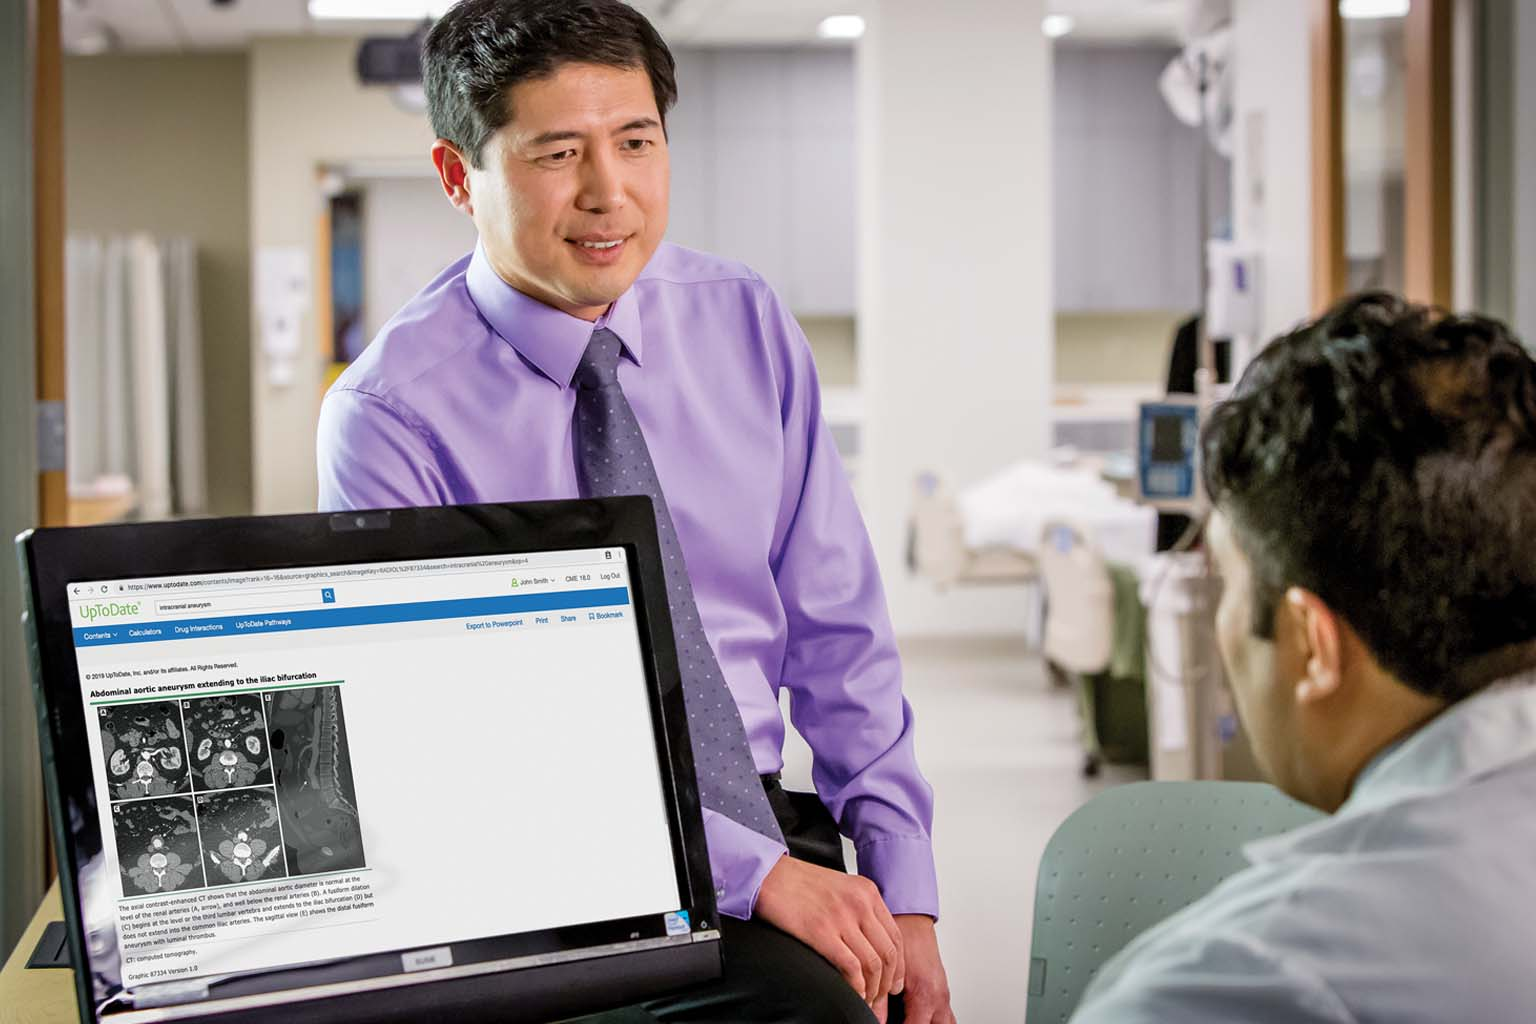 two doctors discussing information displayed on a monitor